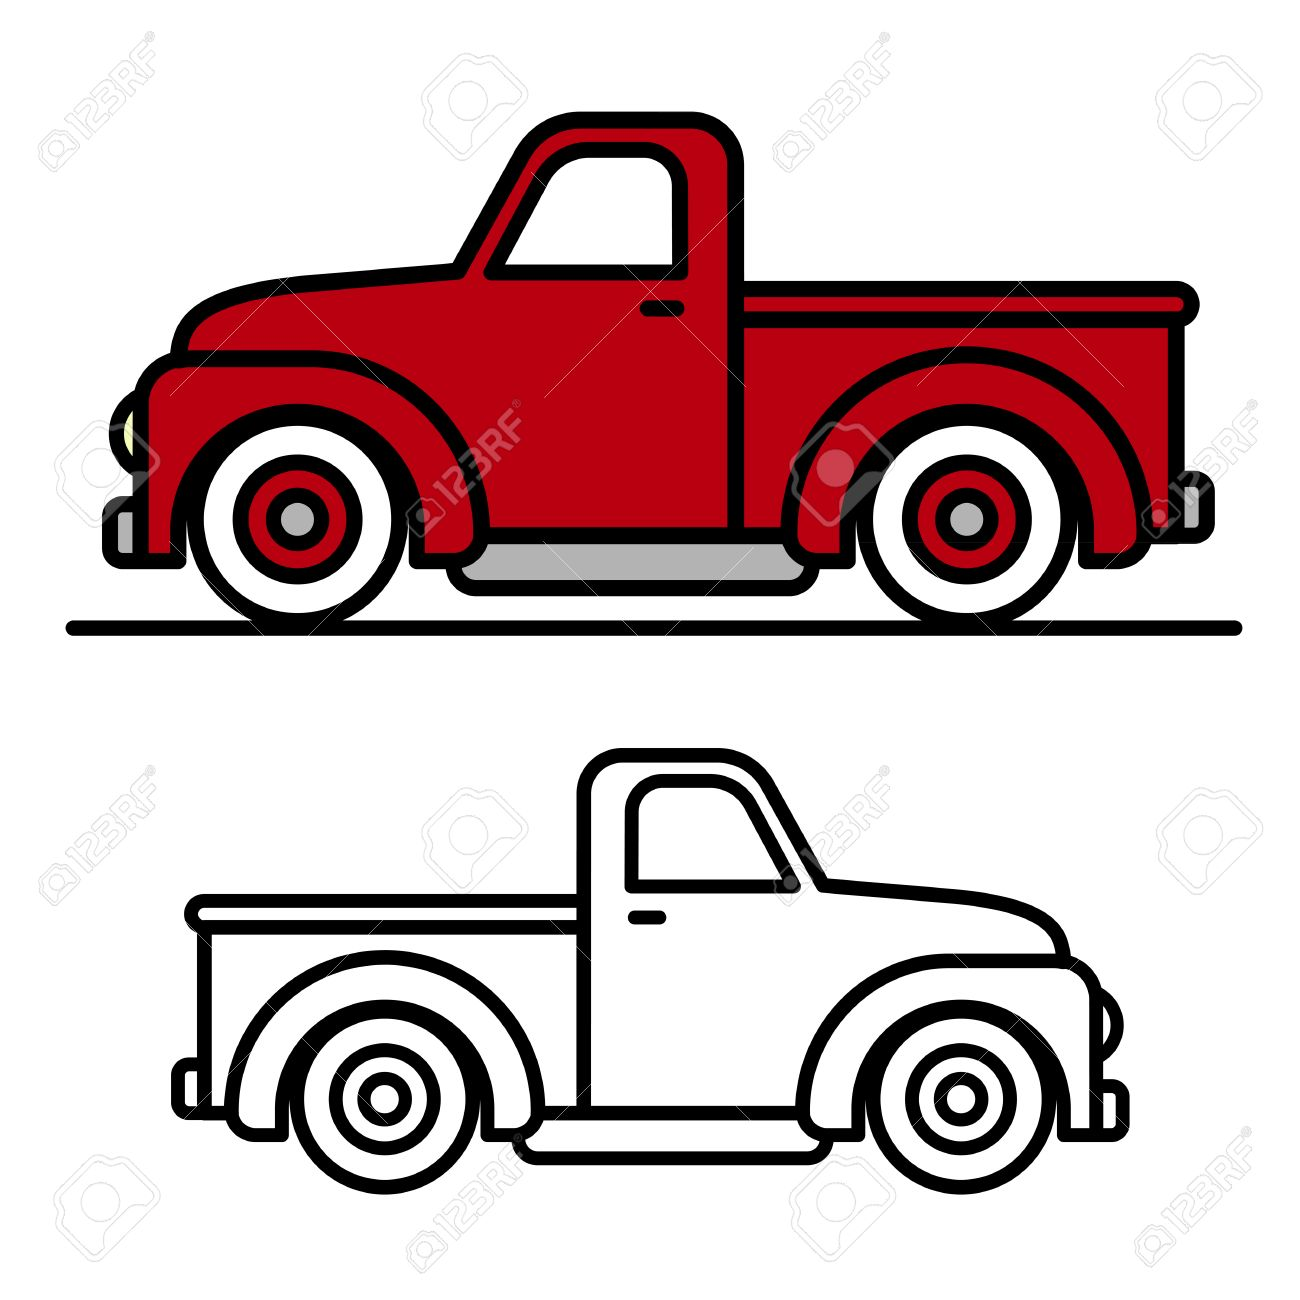 Pickup truck clipart jpg library download Best Cartoon Pickup Truck Clipart Rumors jpg library download